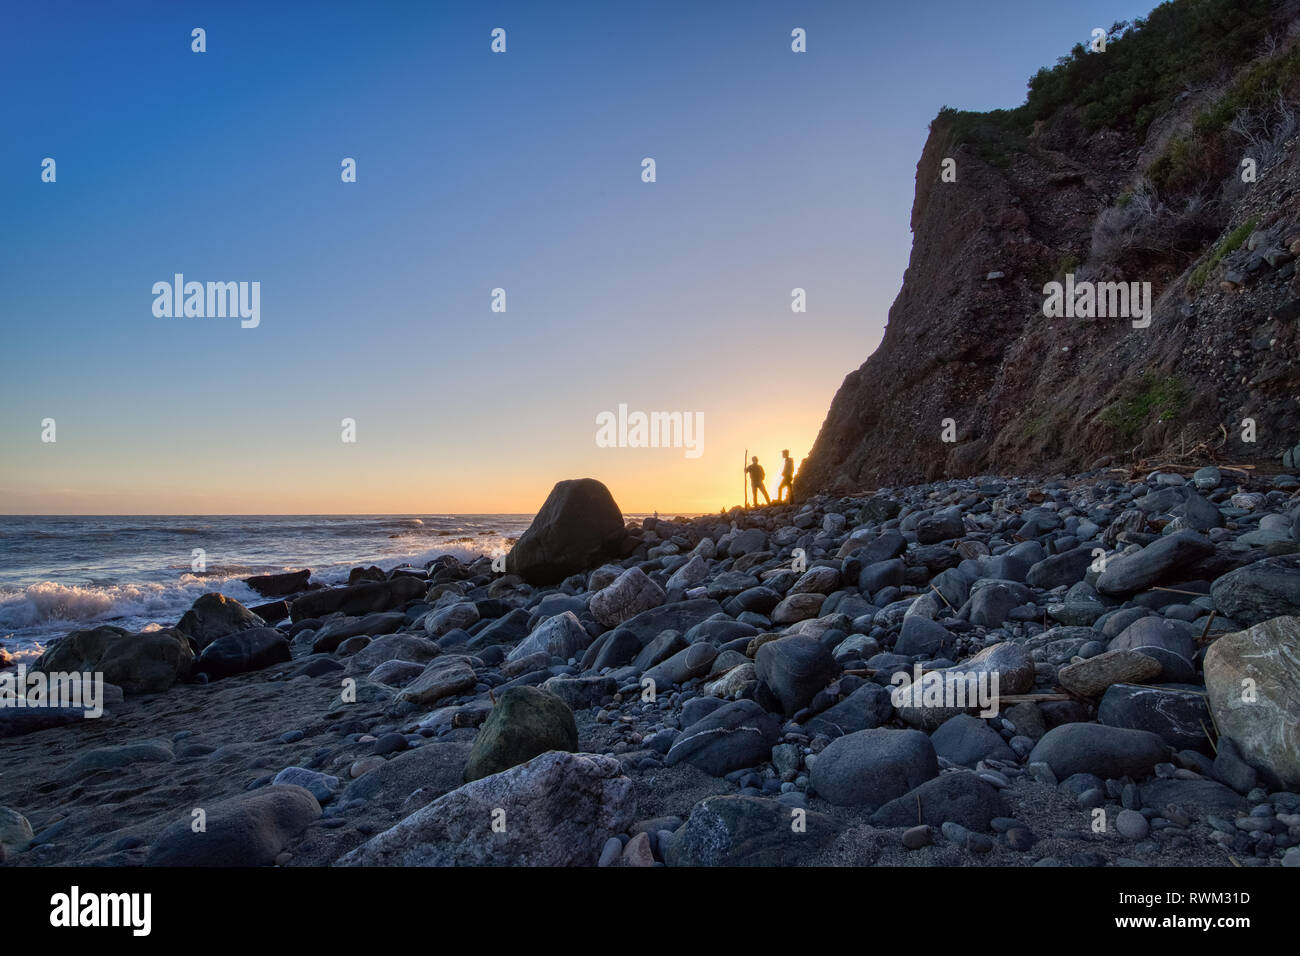 Rocky shoreline view of two men standing near tall cliff at sunset with clear blue sky, Dana Point, California - Stock Image